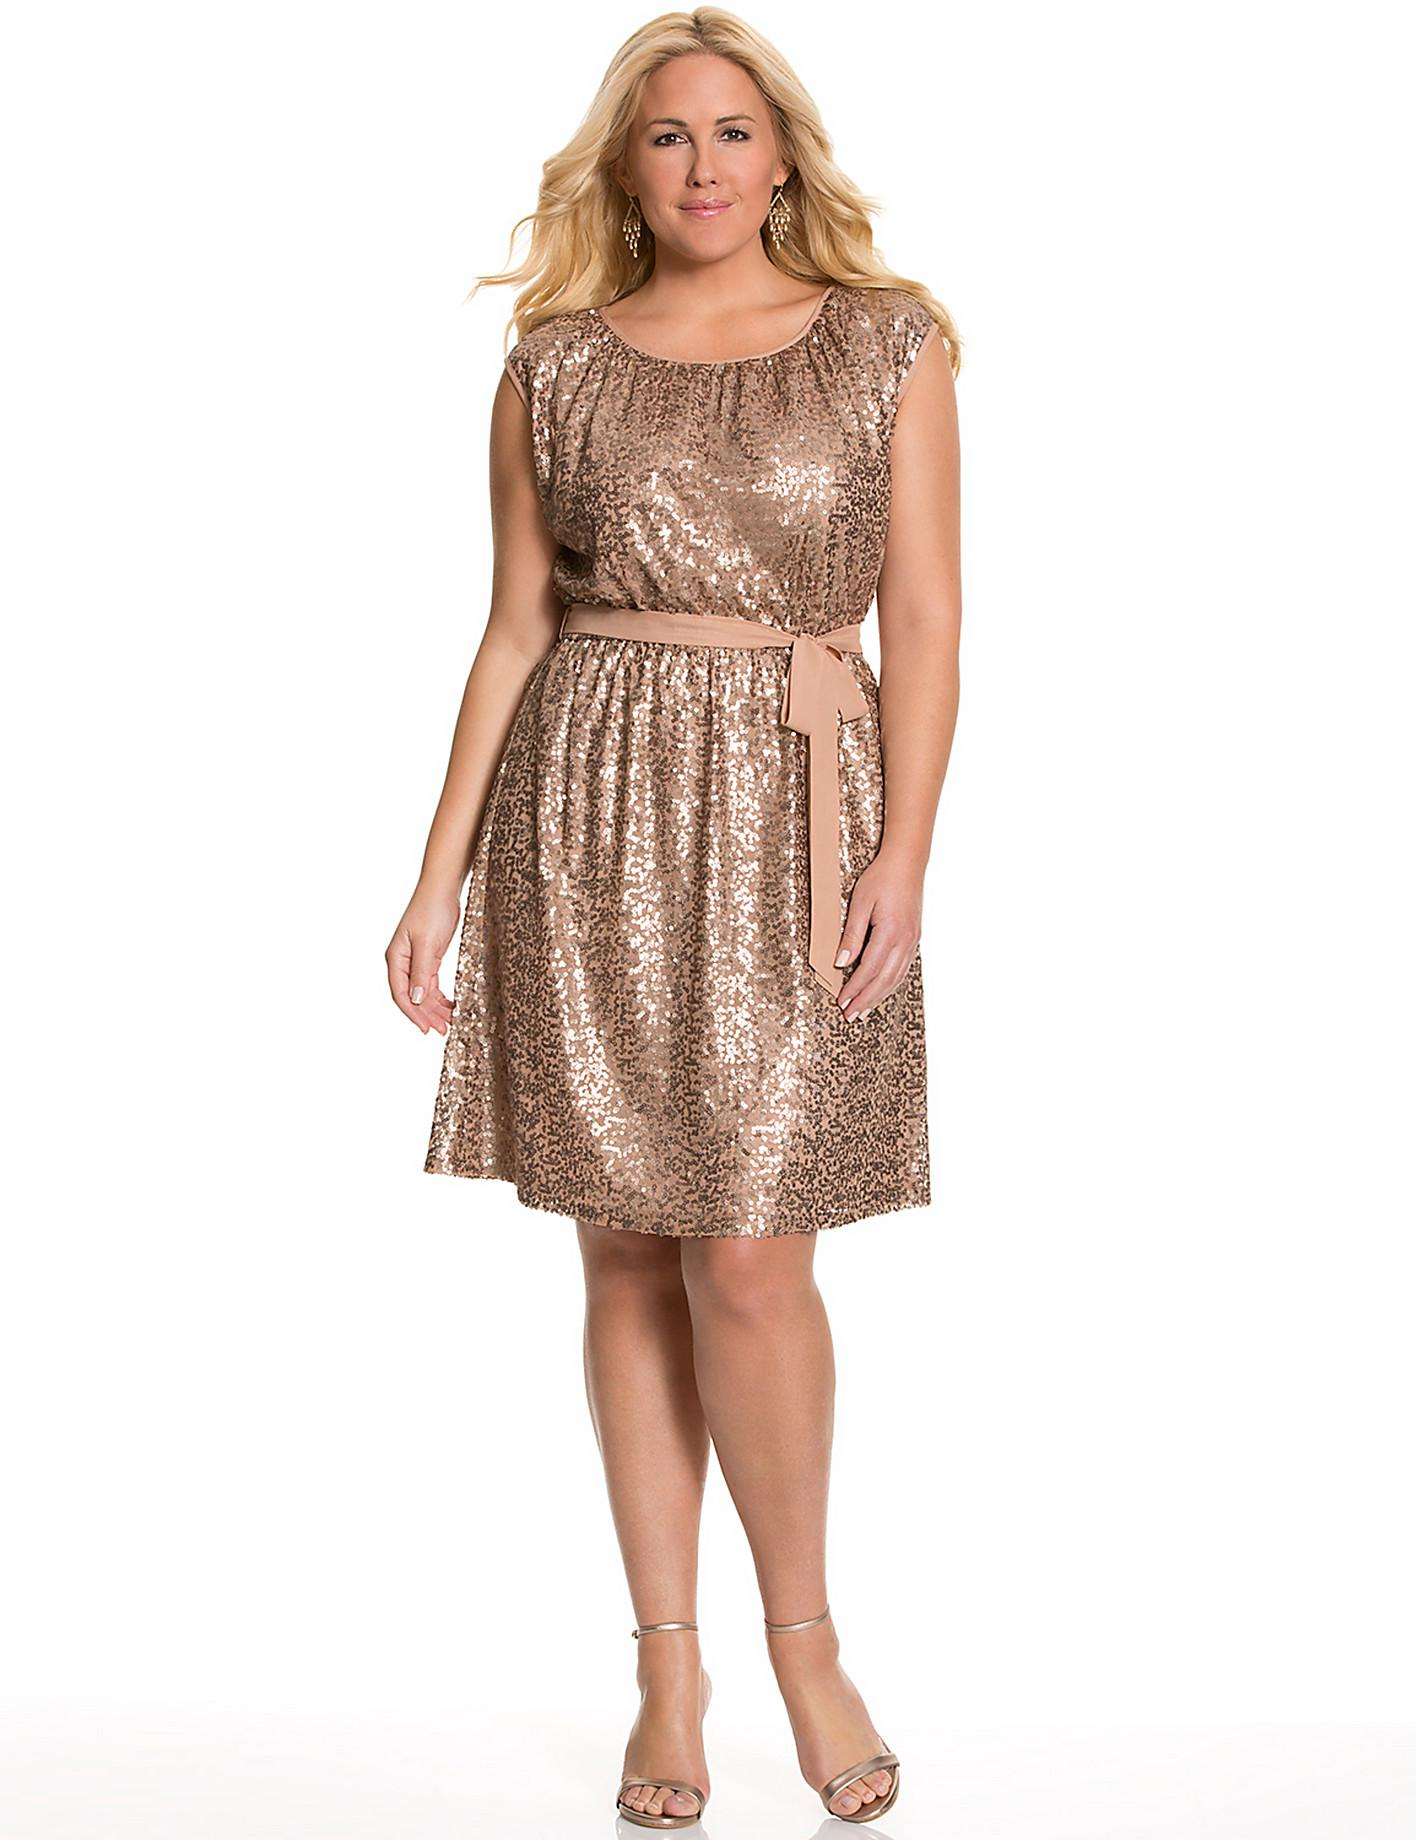 7 Plus-size dresses that will wow at your holiday parties